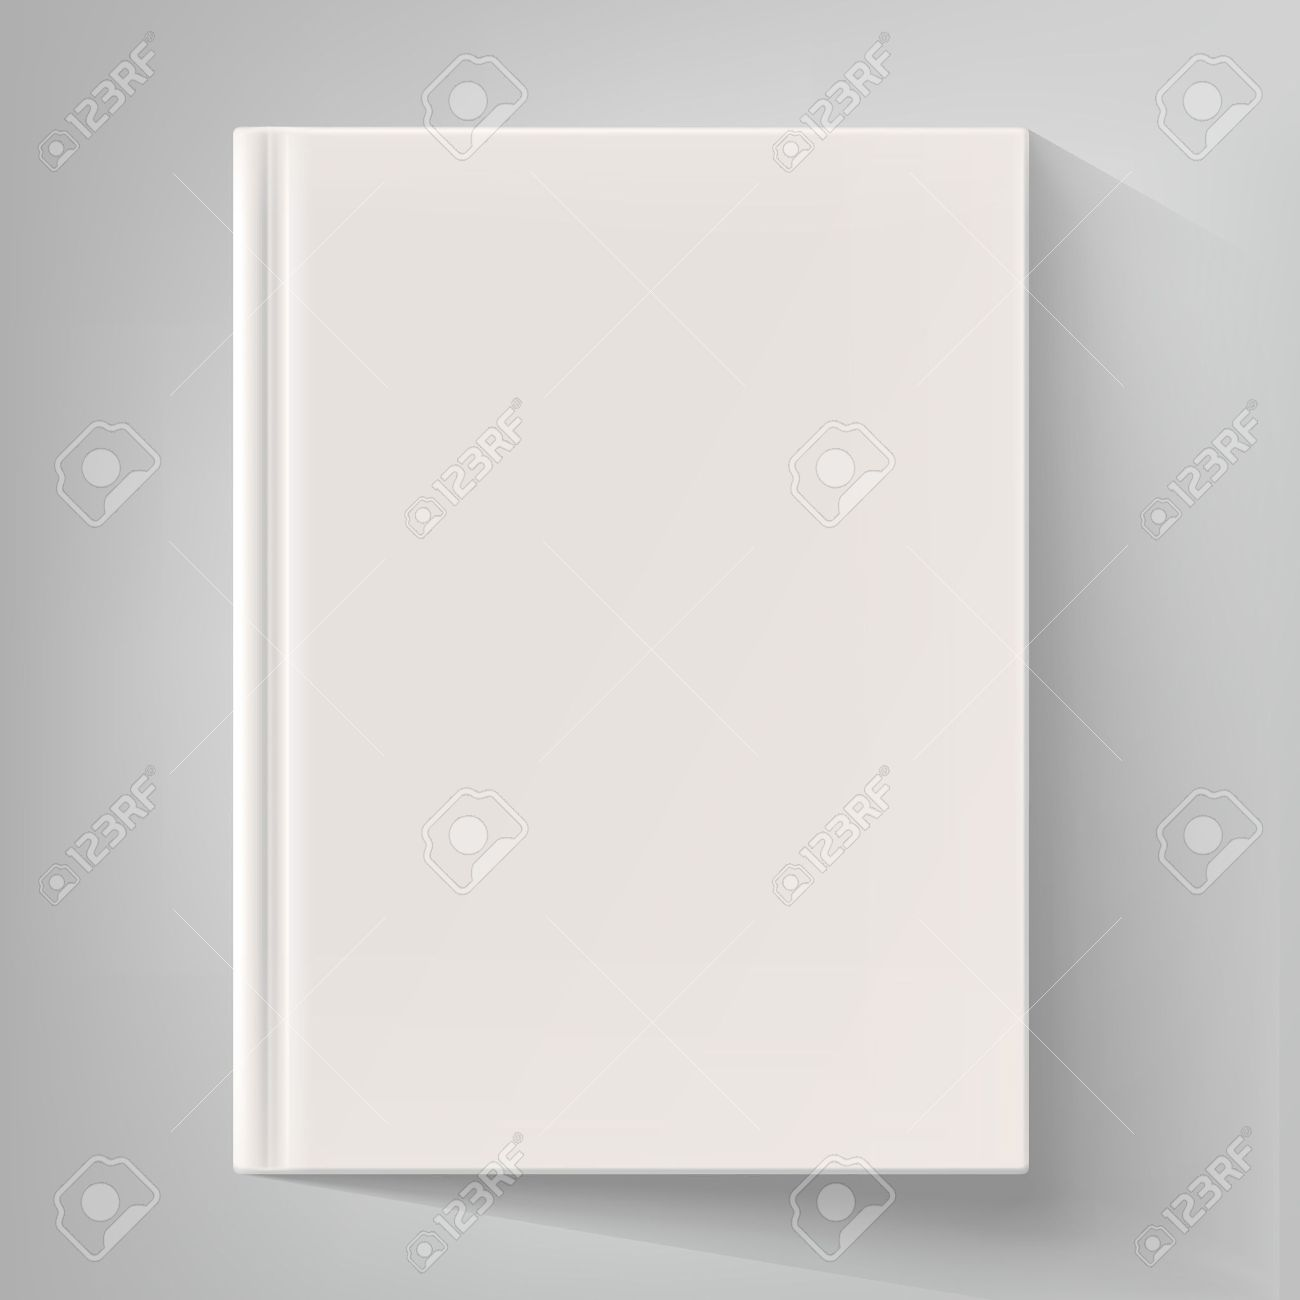 blank book cover royalty free cliparts vectors and stock